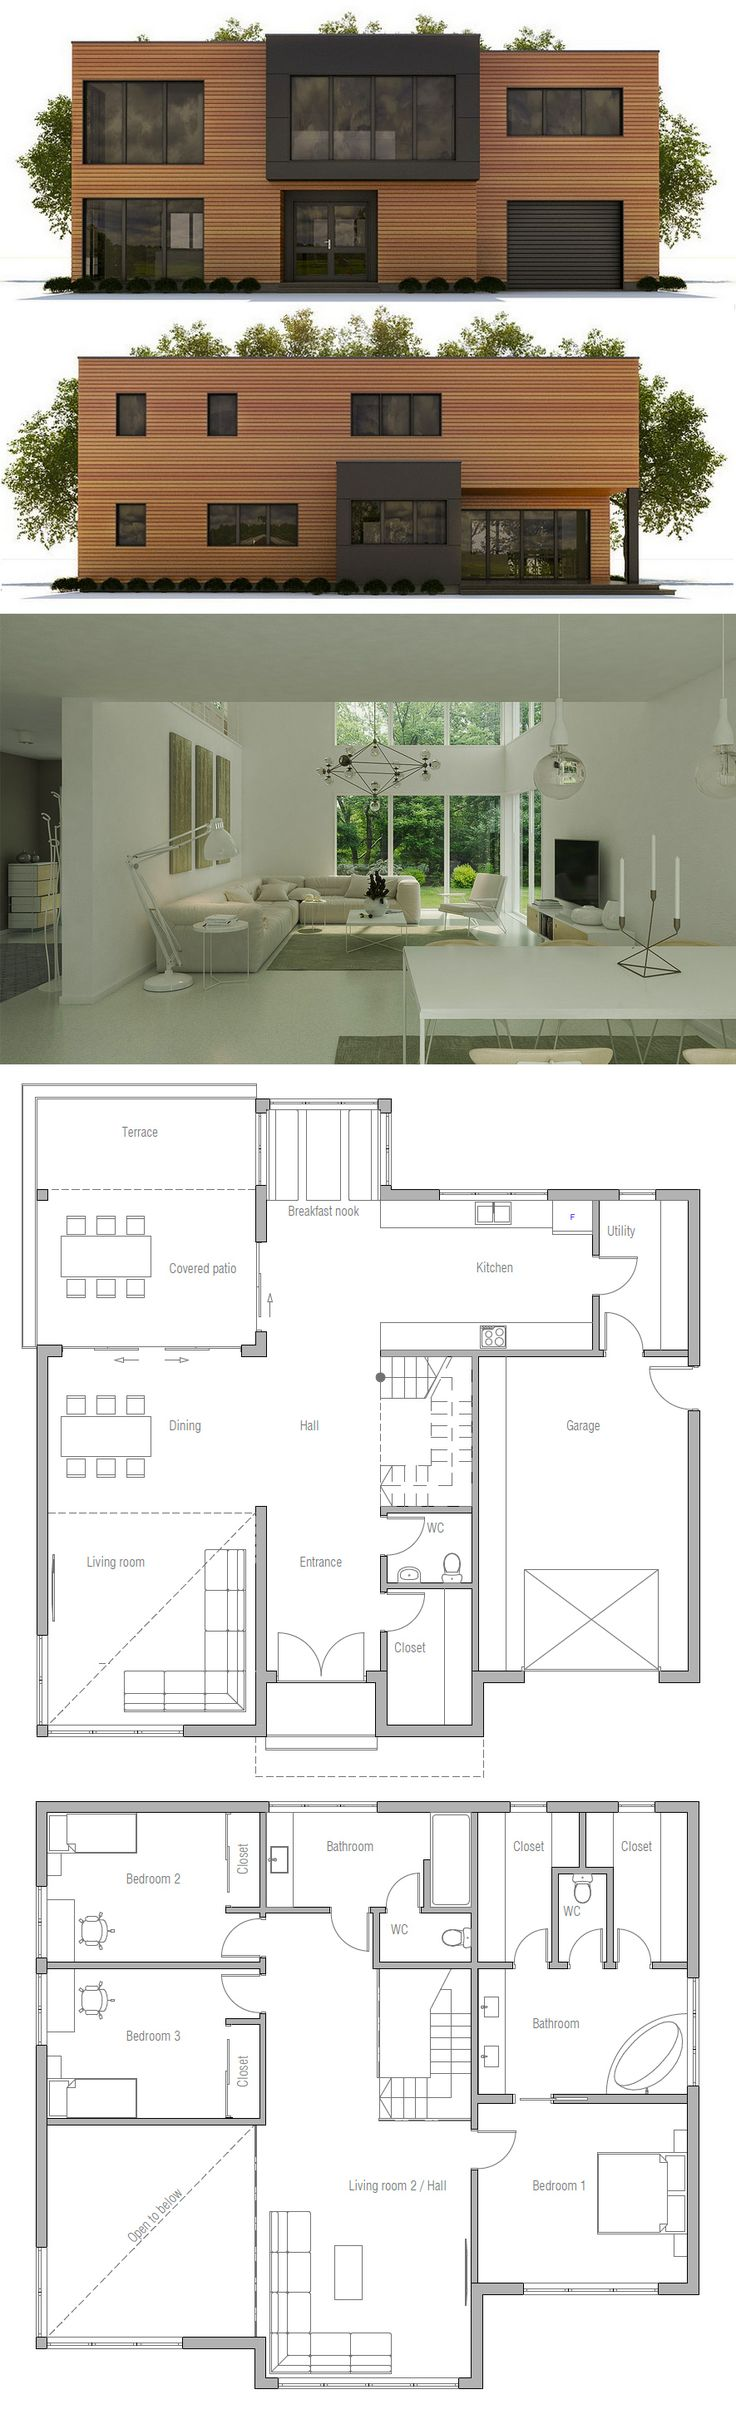 1000+ images about House Plans, ontemporary Modern Houses on ... - ^